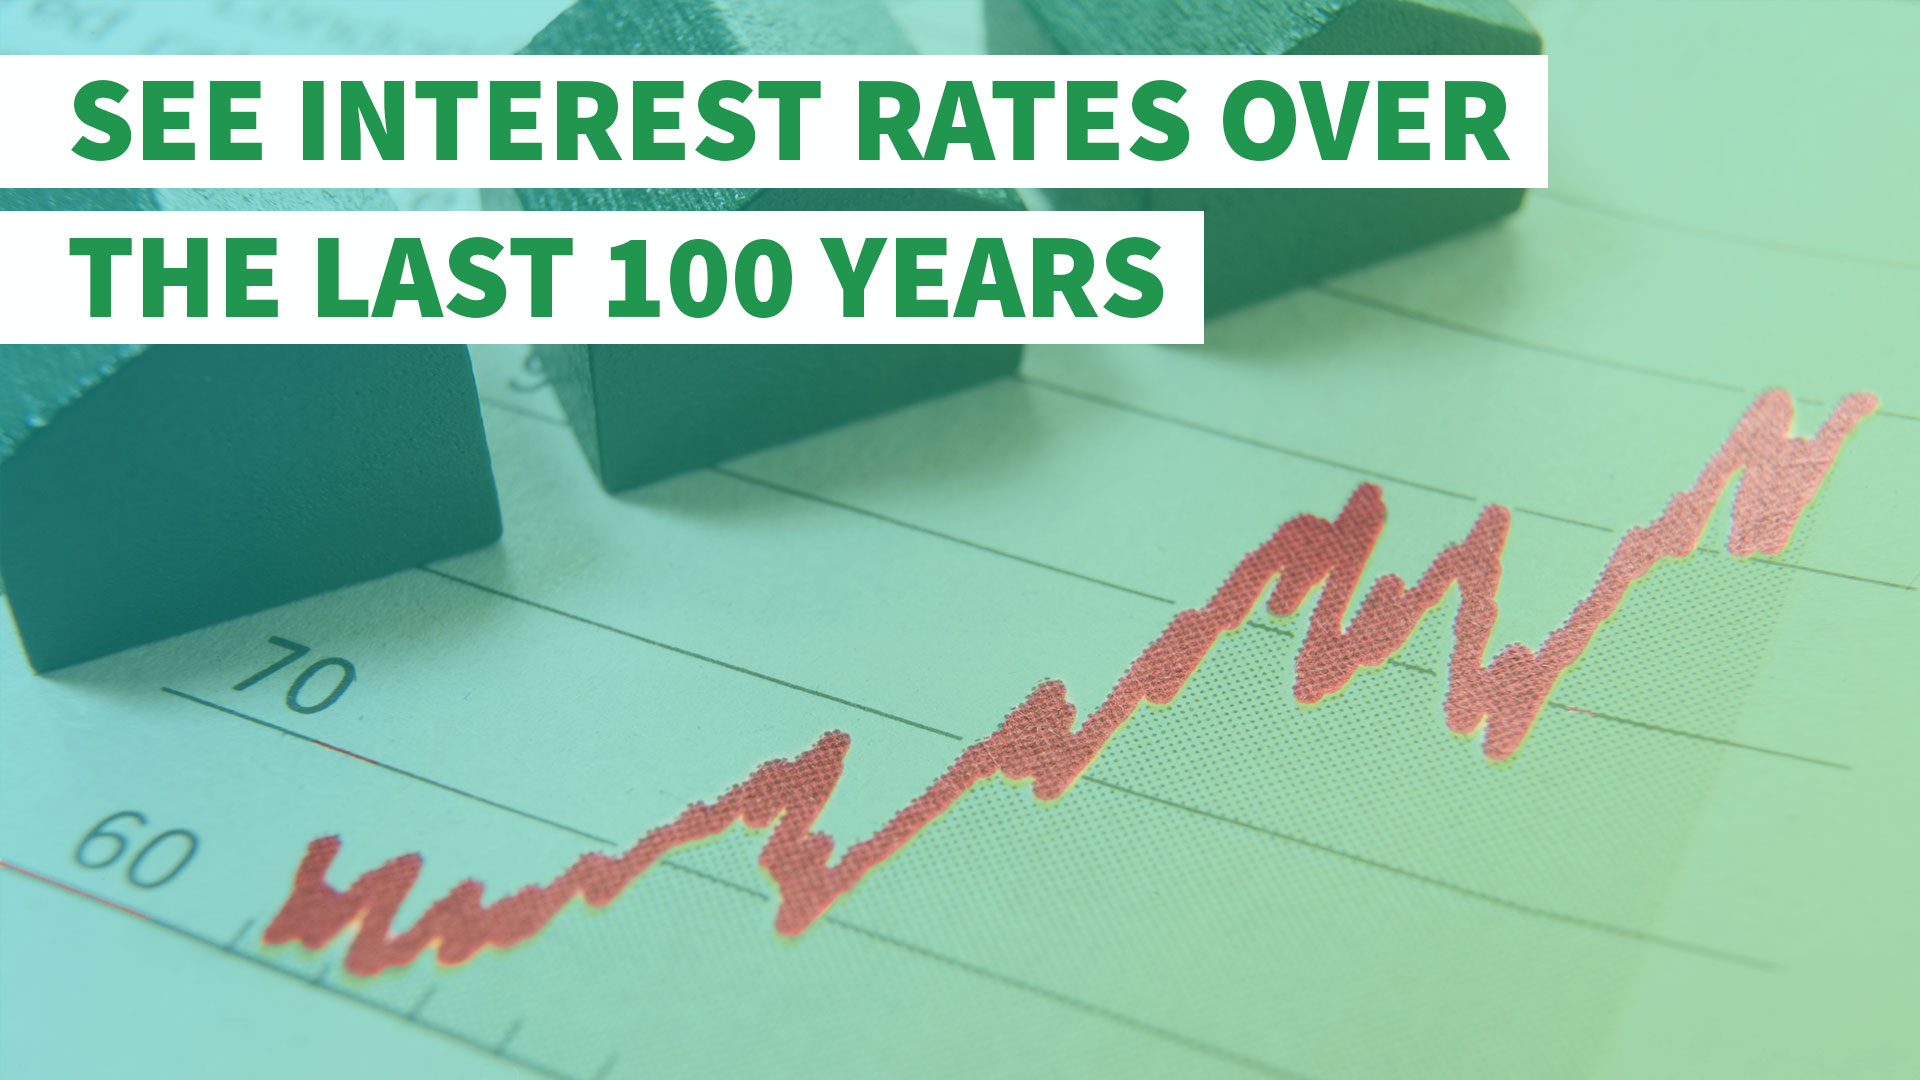 Credit Report Companies >> See Interest Rates Over the Last 100 Years | GOBankingRates